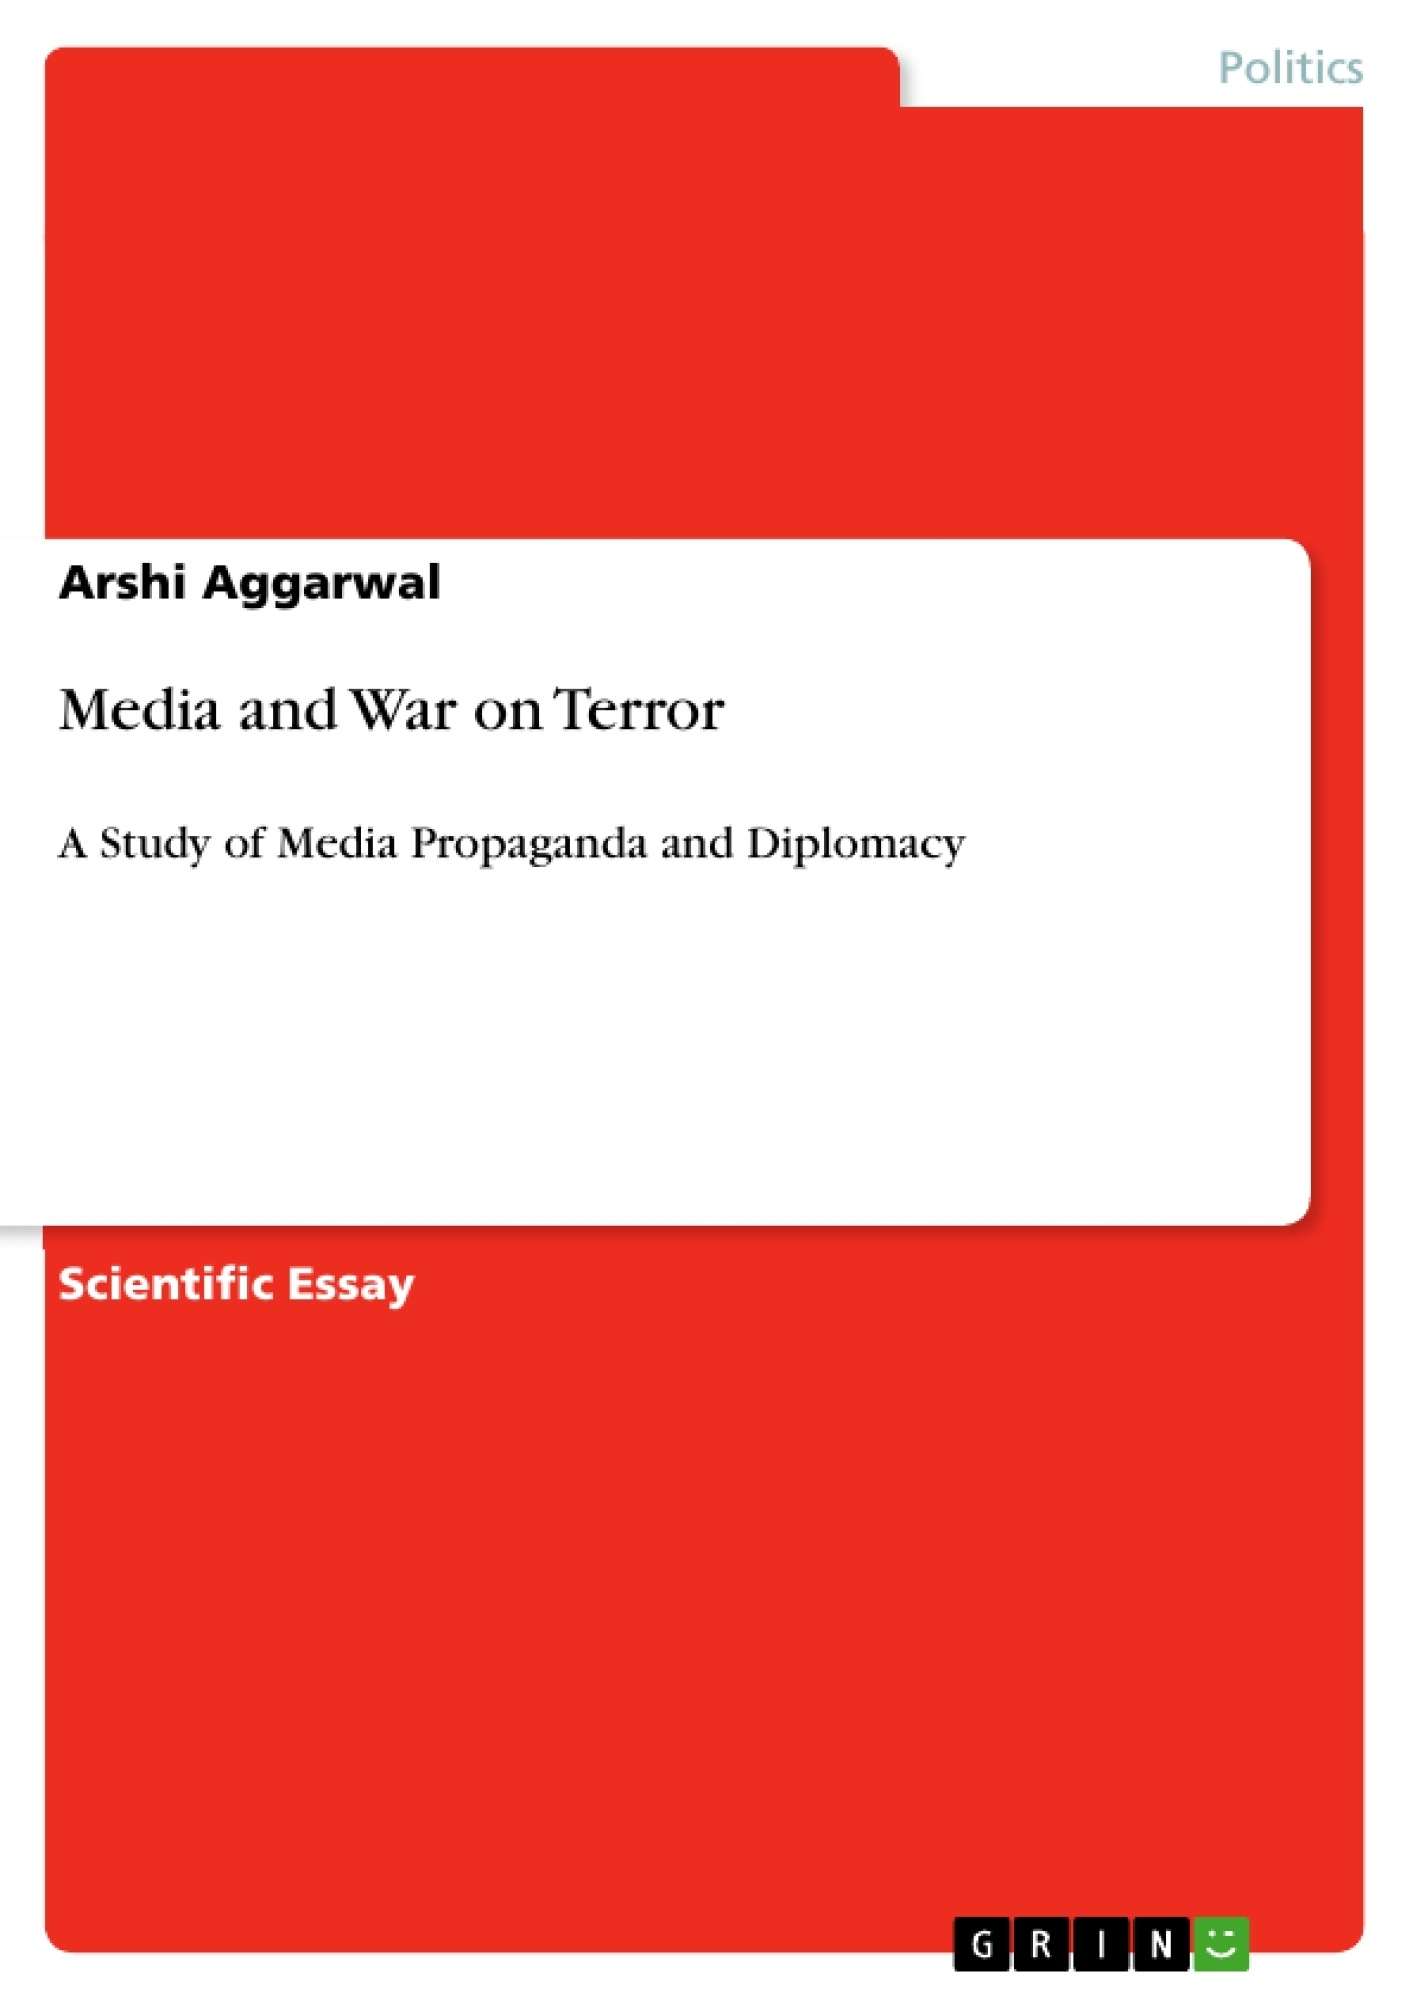 Title: Media and War on Terror